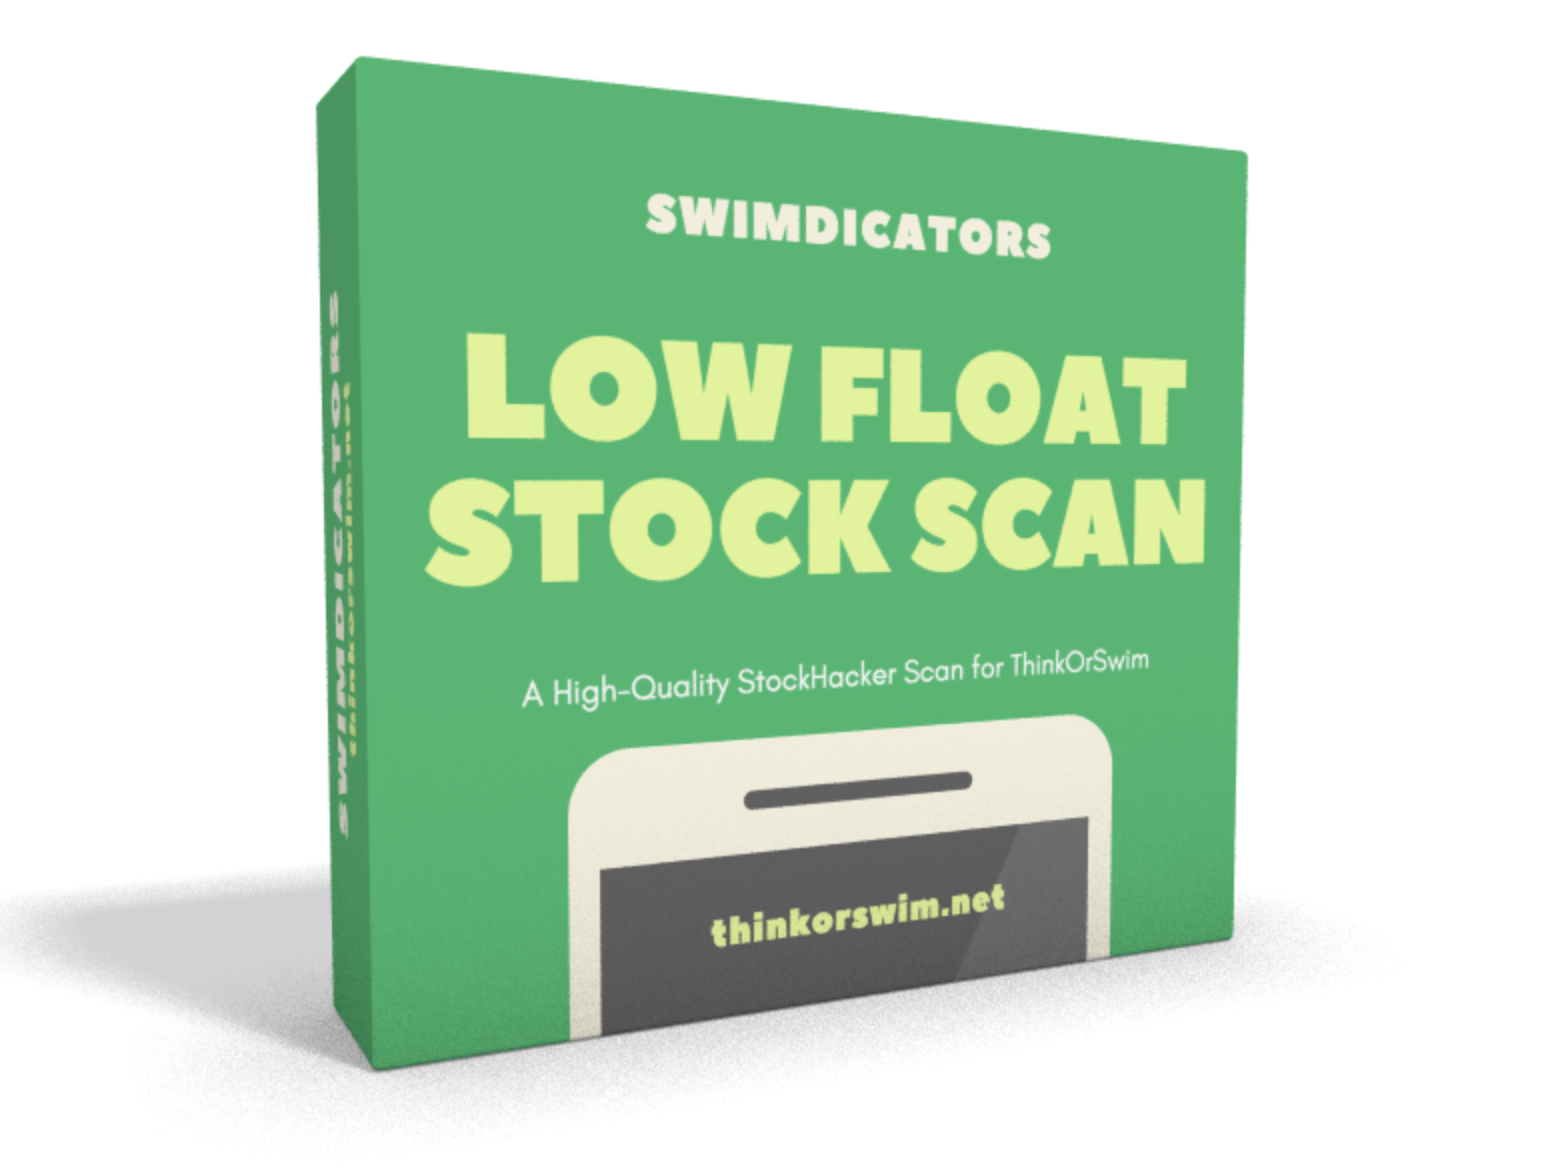 low float stock scan for thinkorswim